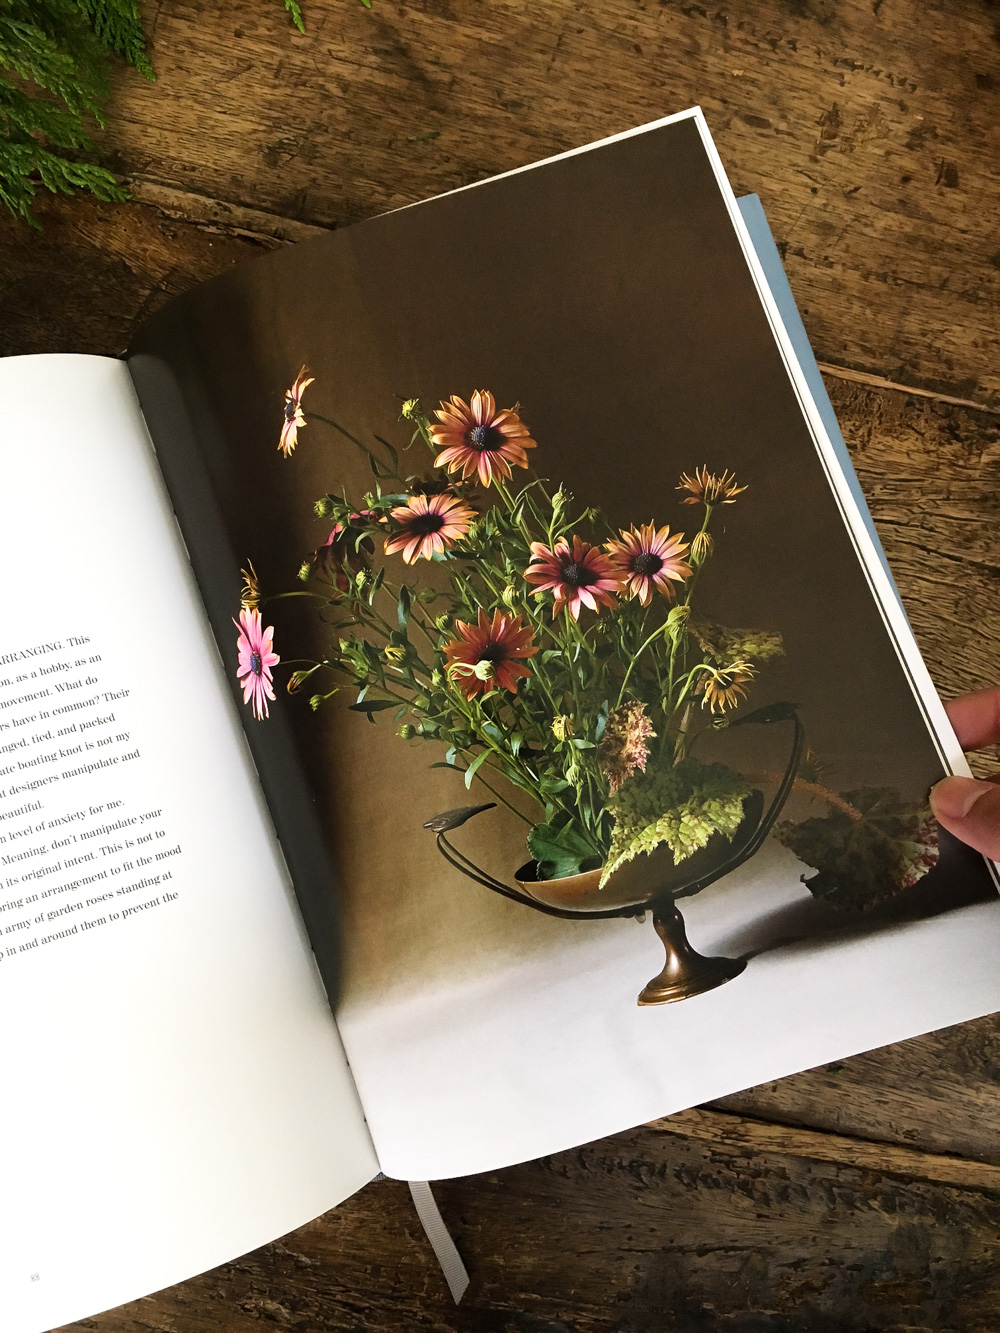 2-amazing-flower-books-9